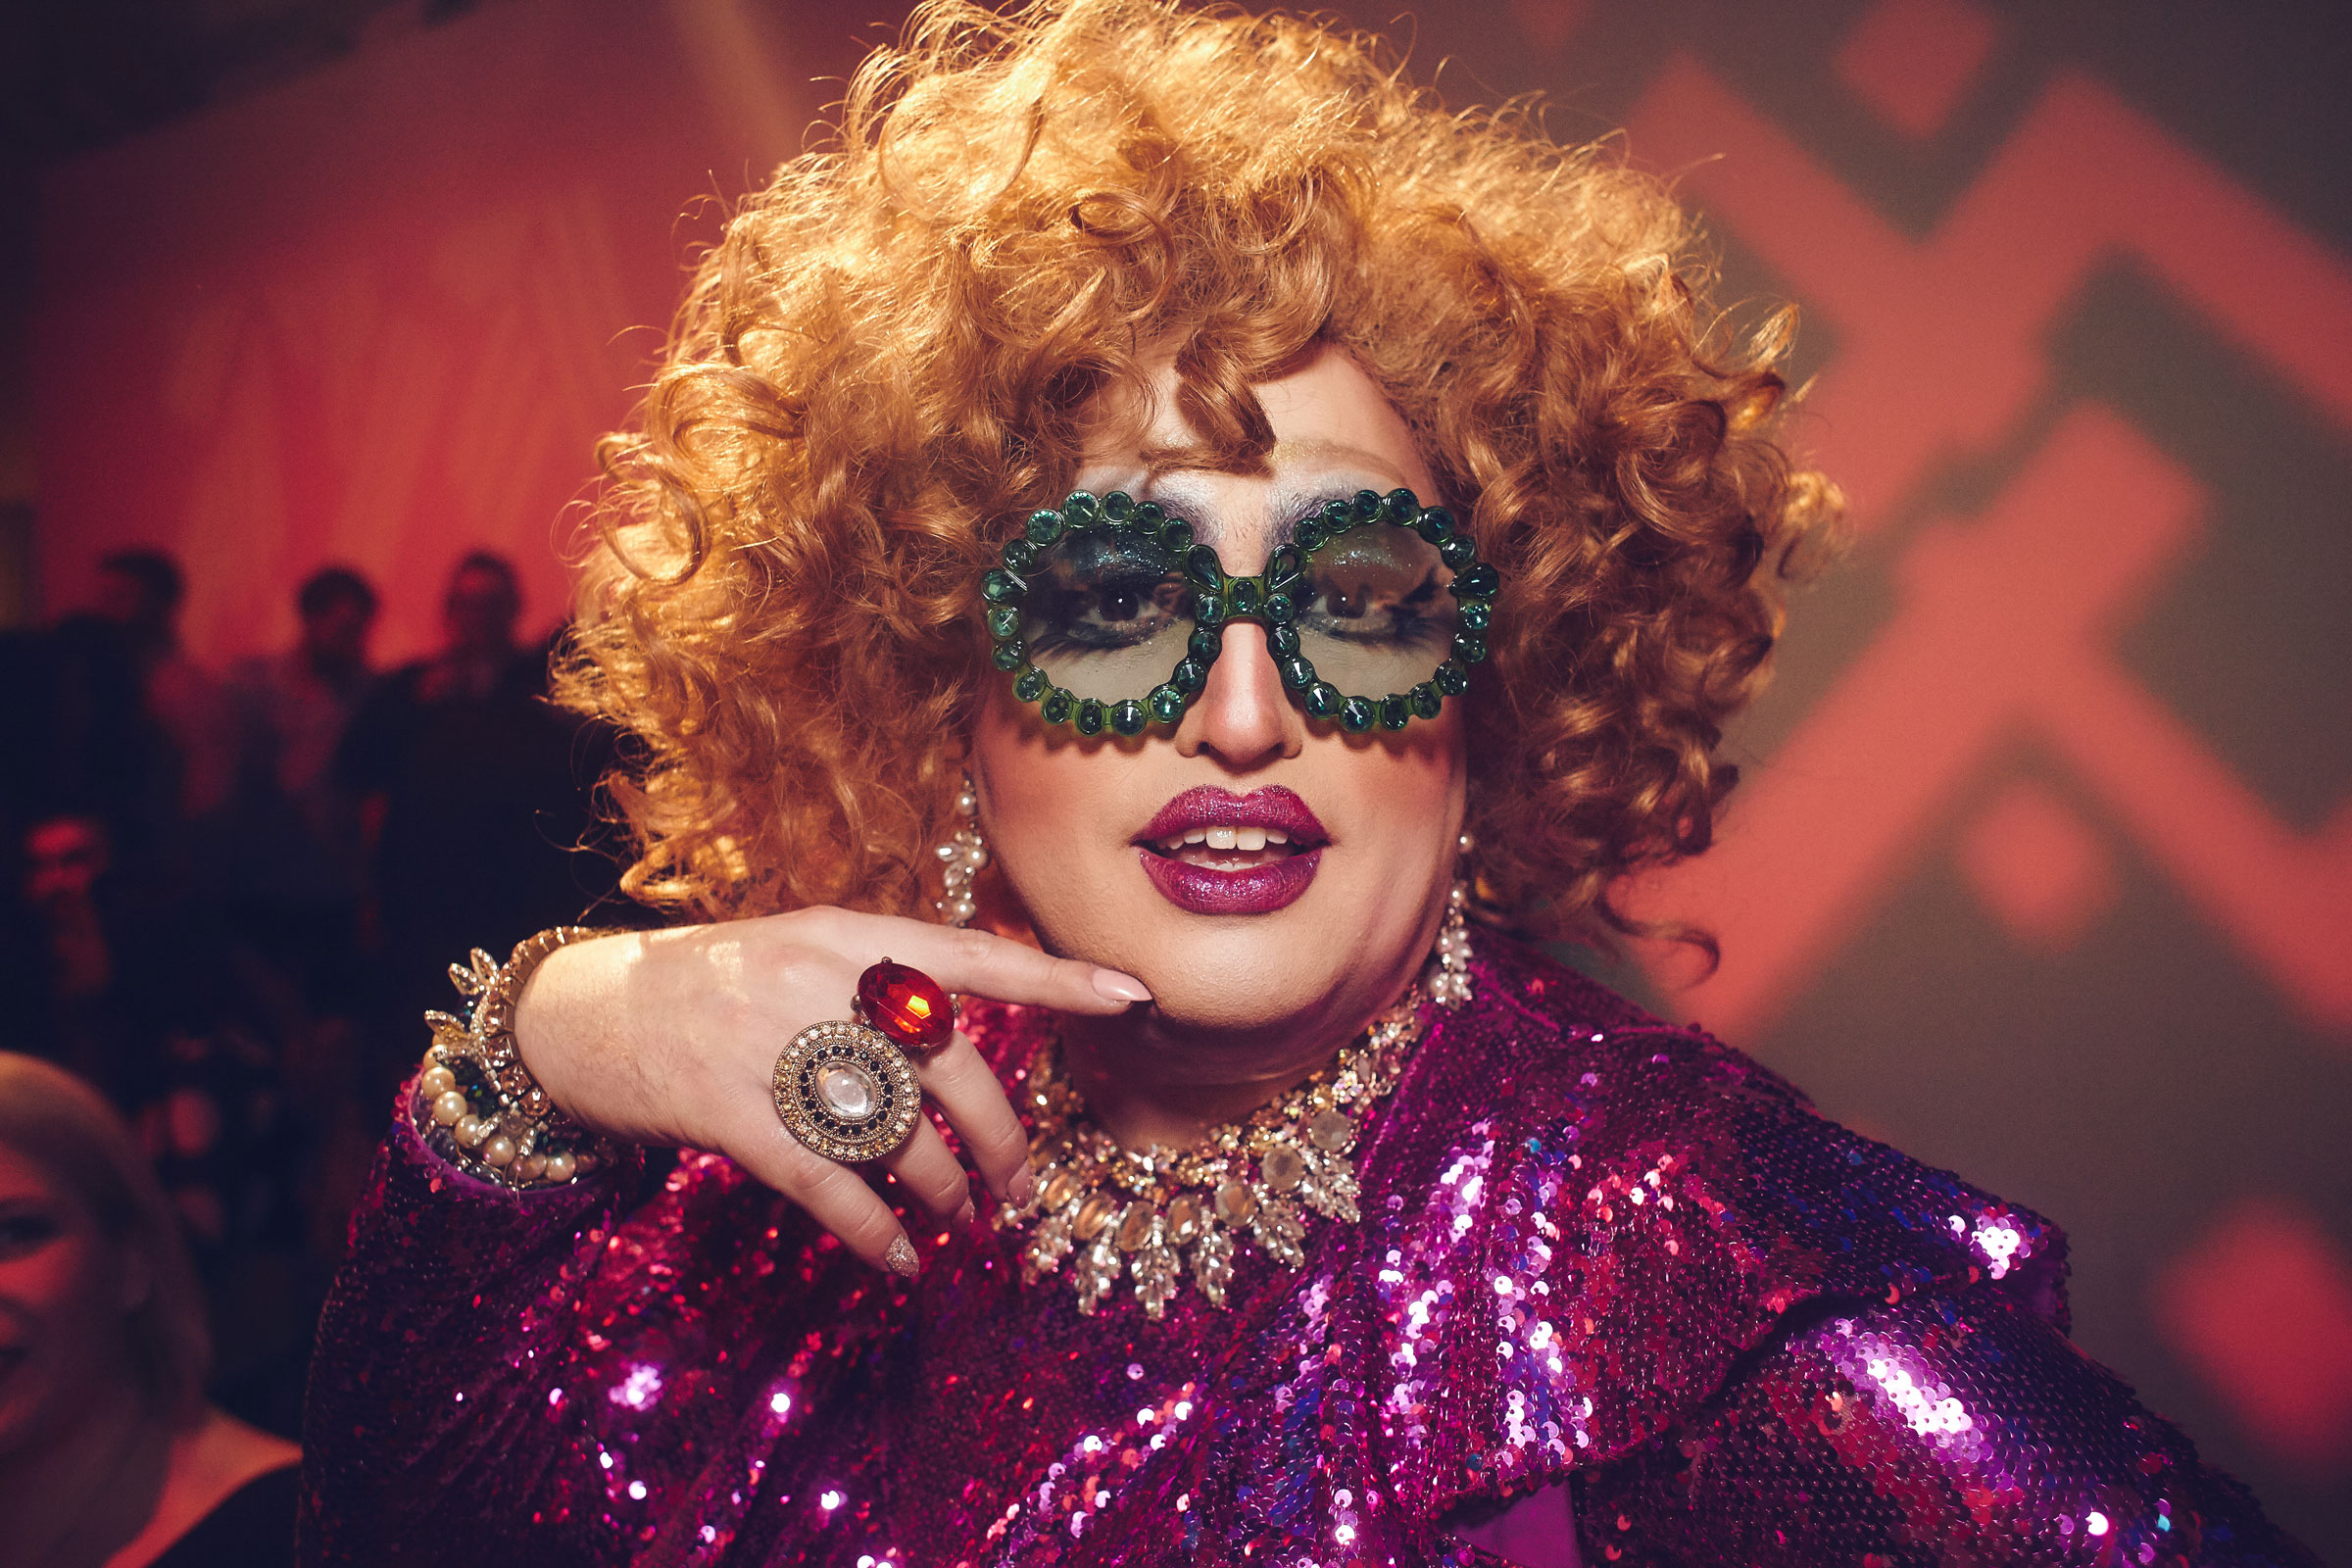 """""""Drag should always be about disrupting norms and upending the status quo,"""" says LMHM."""